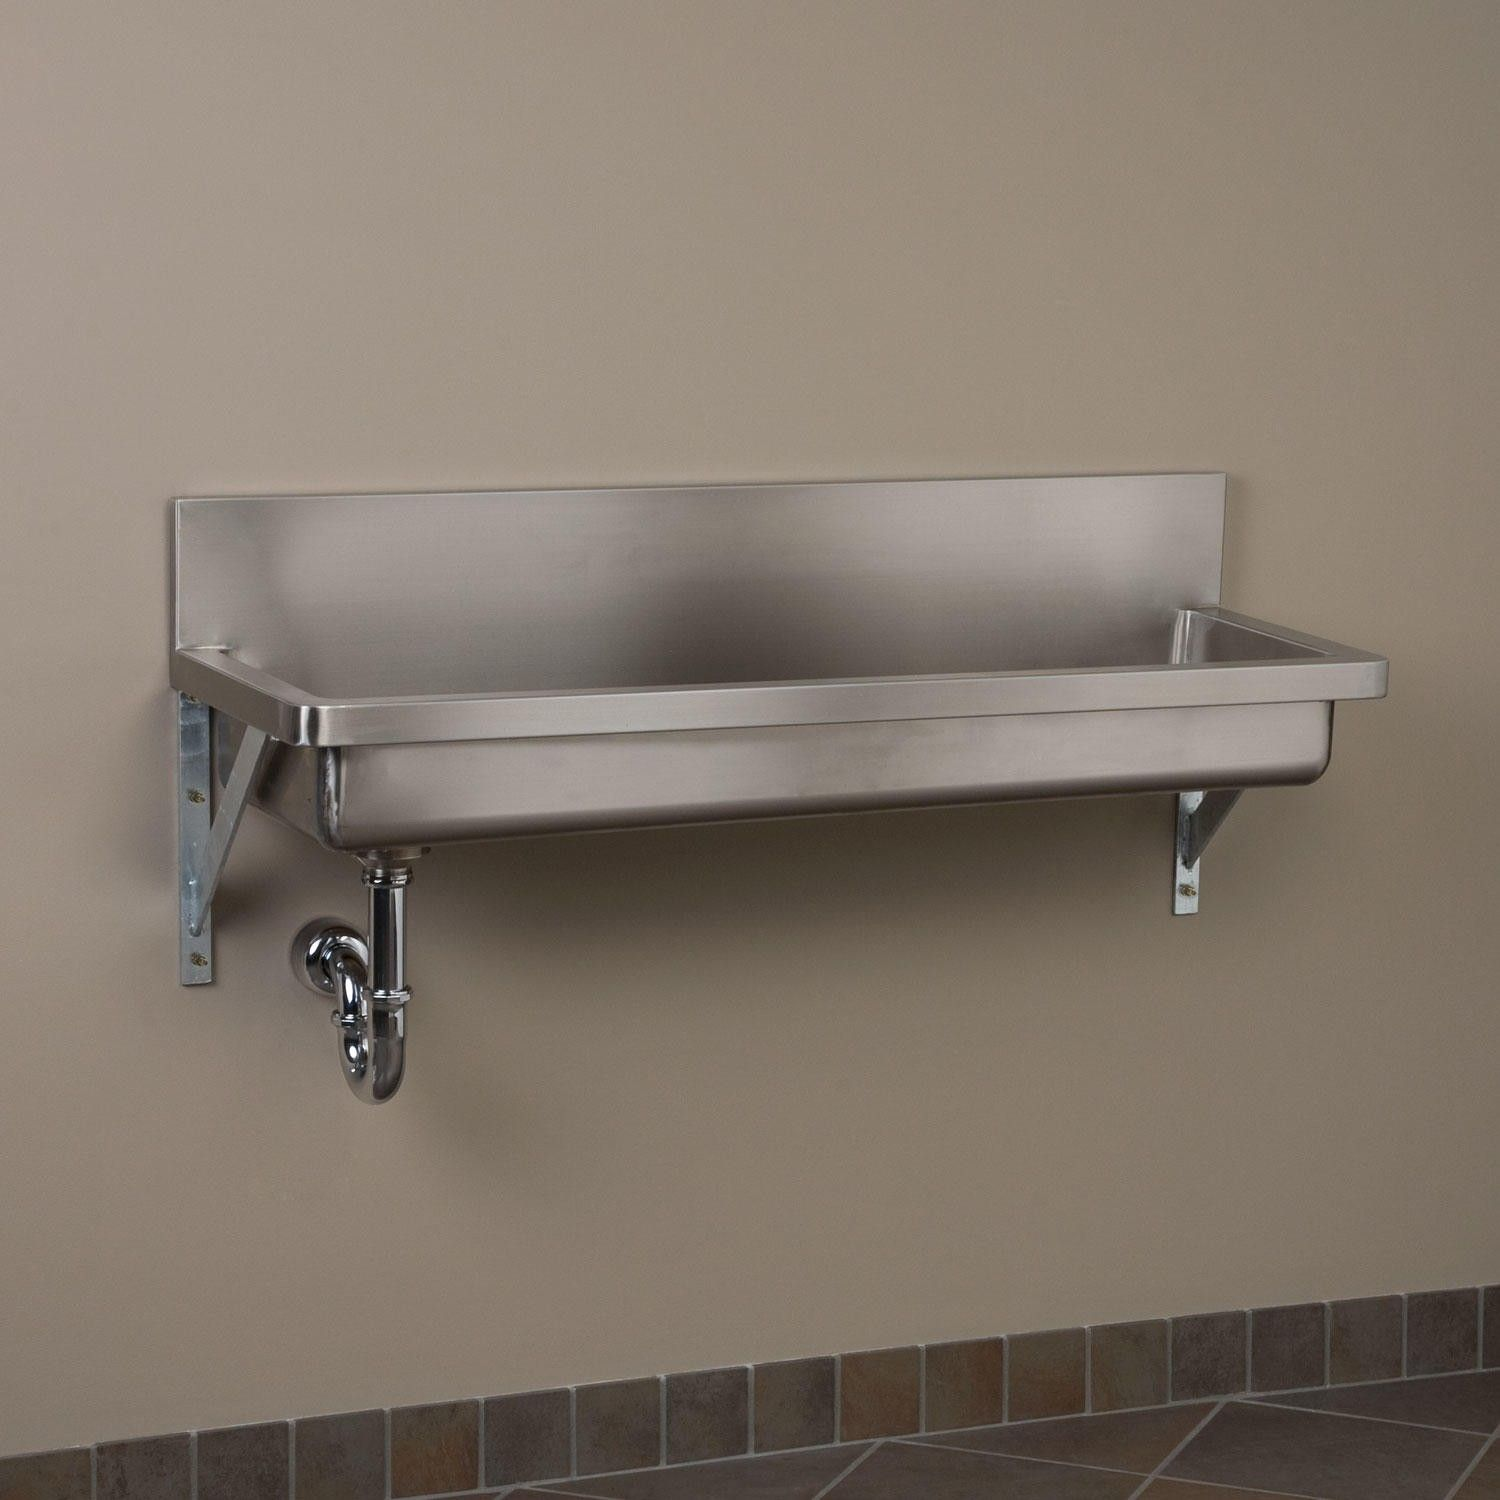 Stainless Steel Wall Mount Commercial Sink Kitchen Sinks